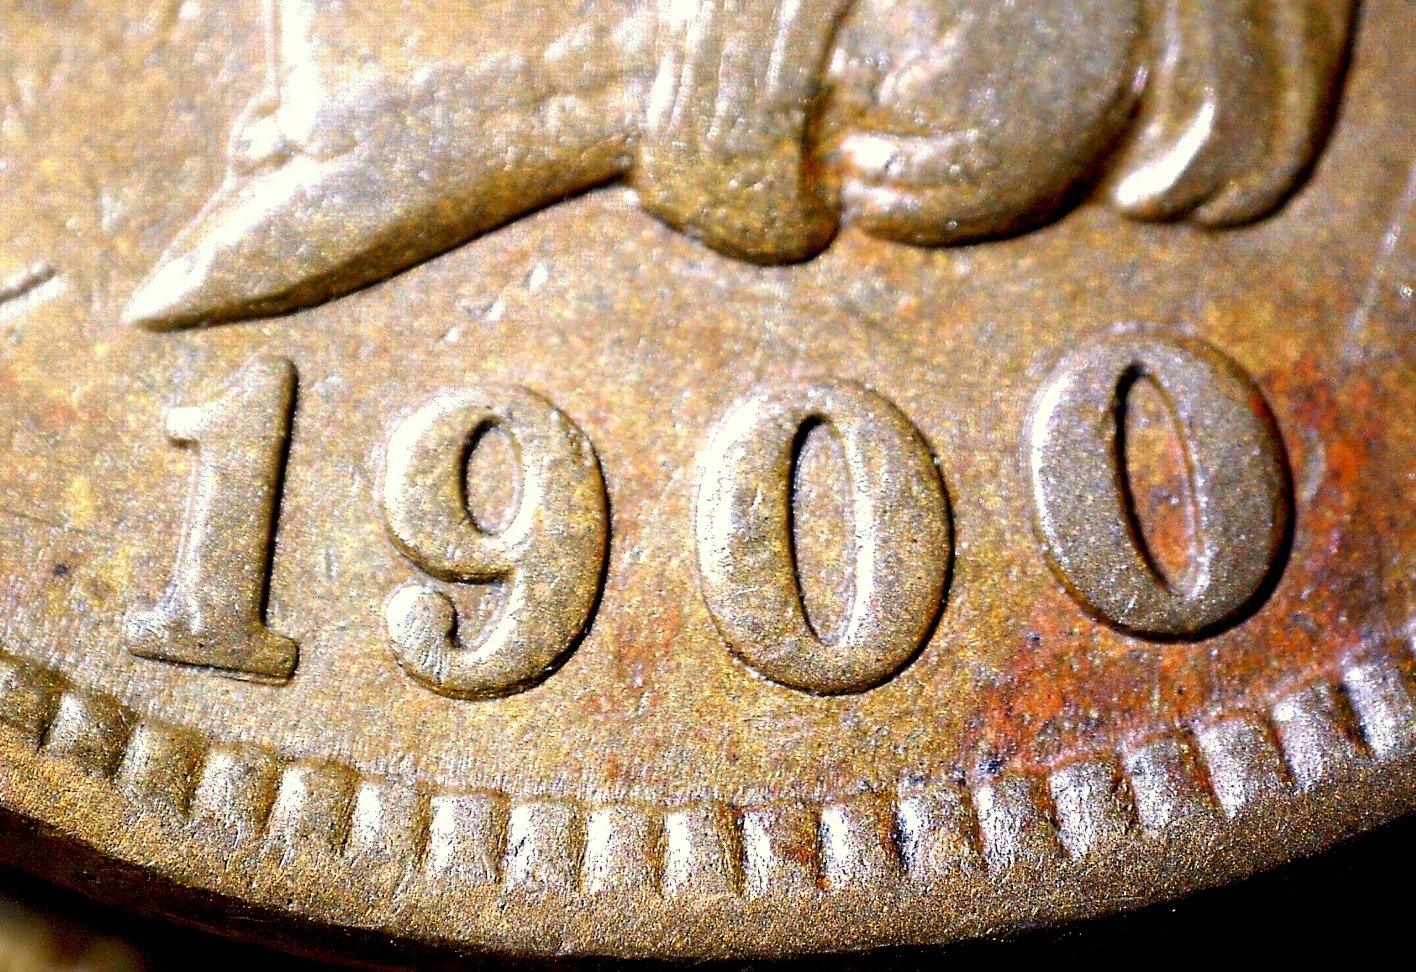 1900 RPD-008 - Indian Head Penny - Photo by David Killough